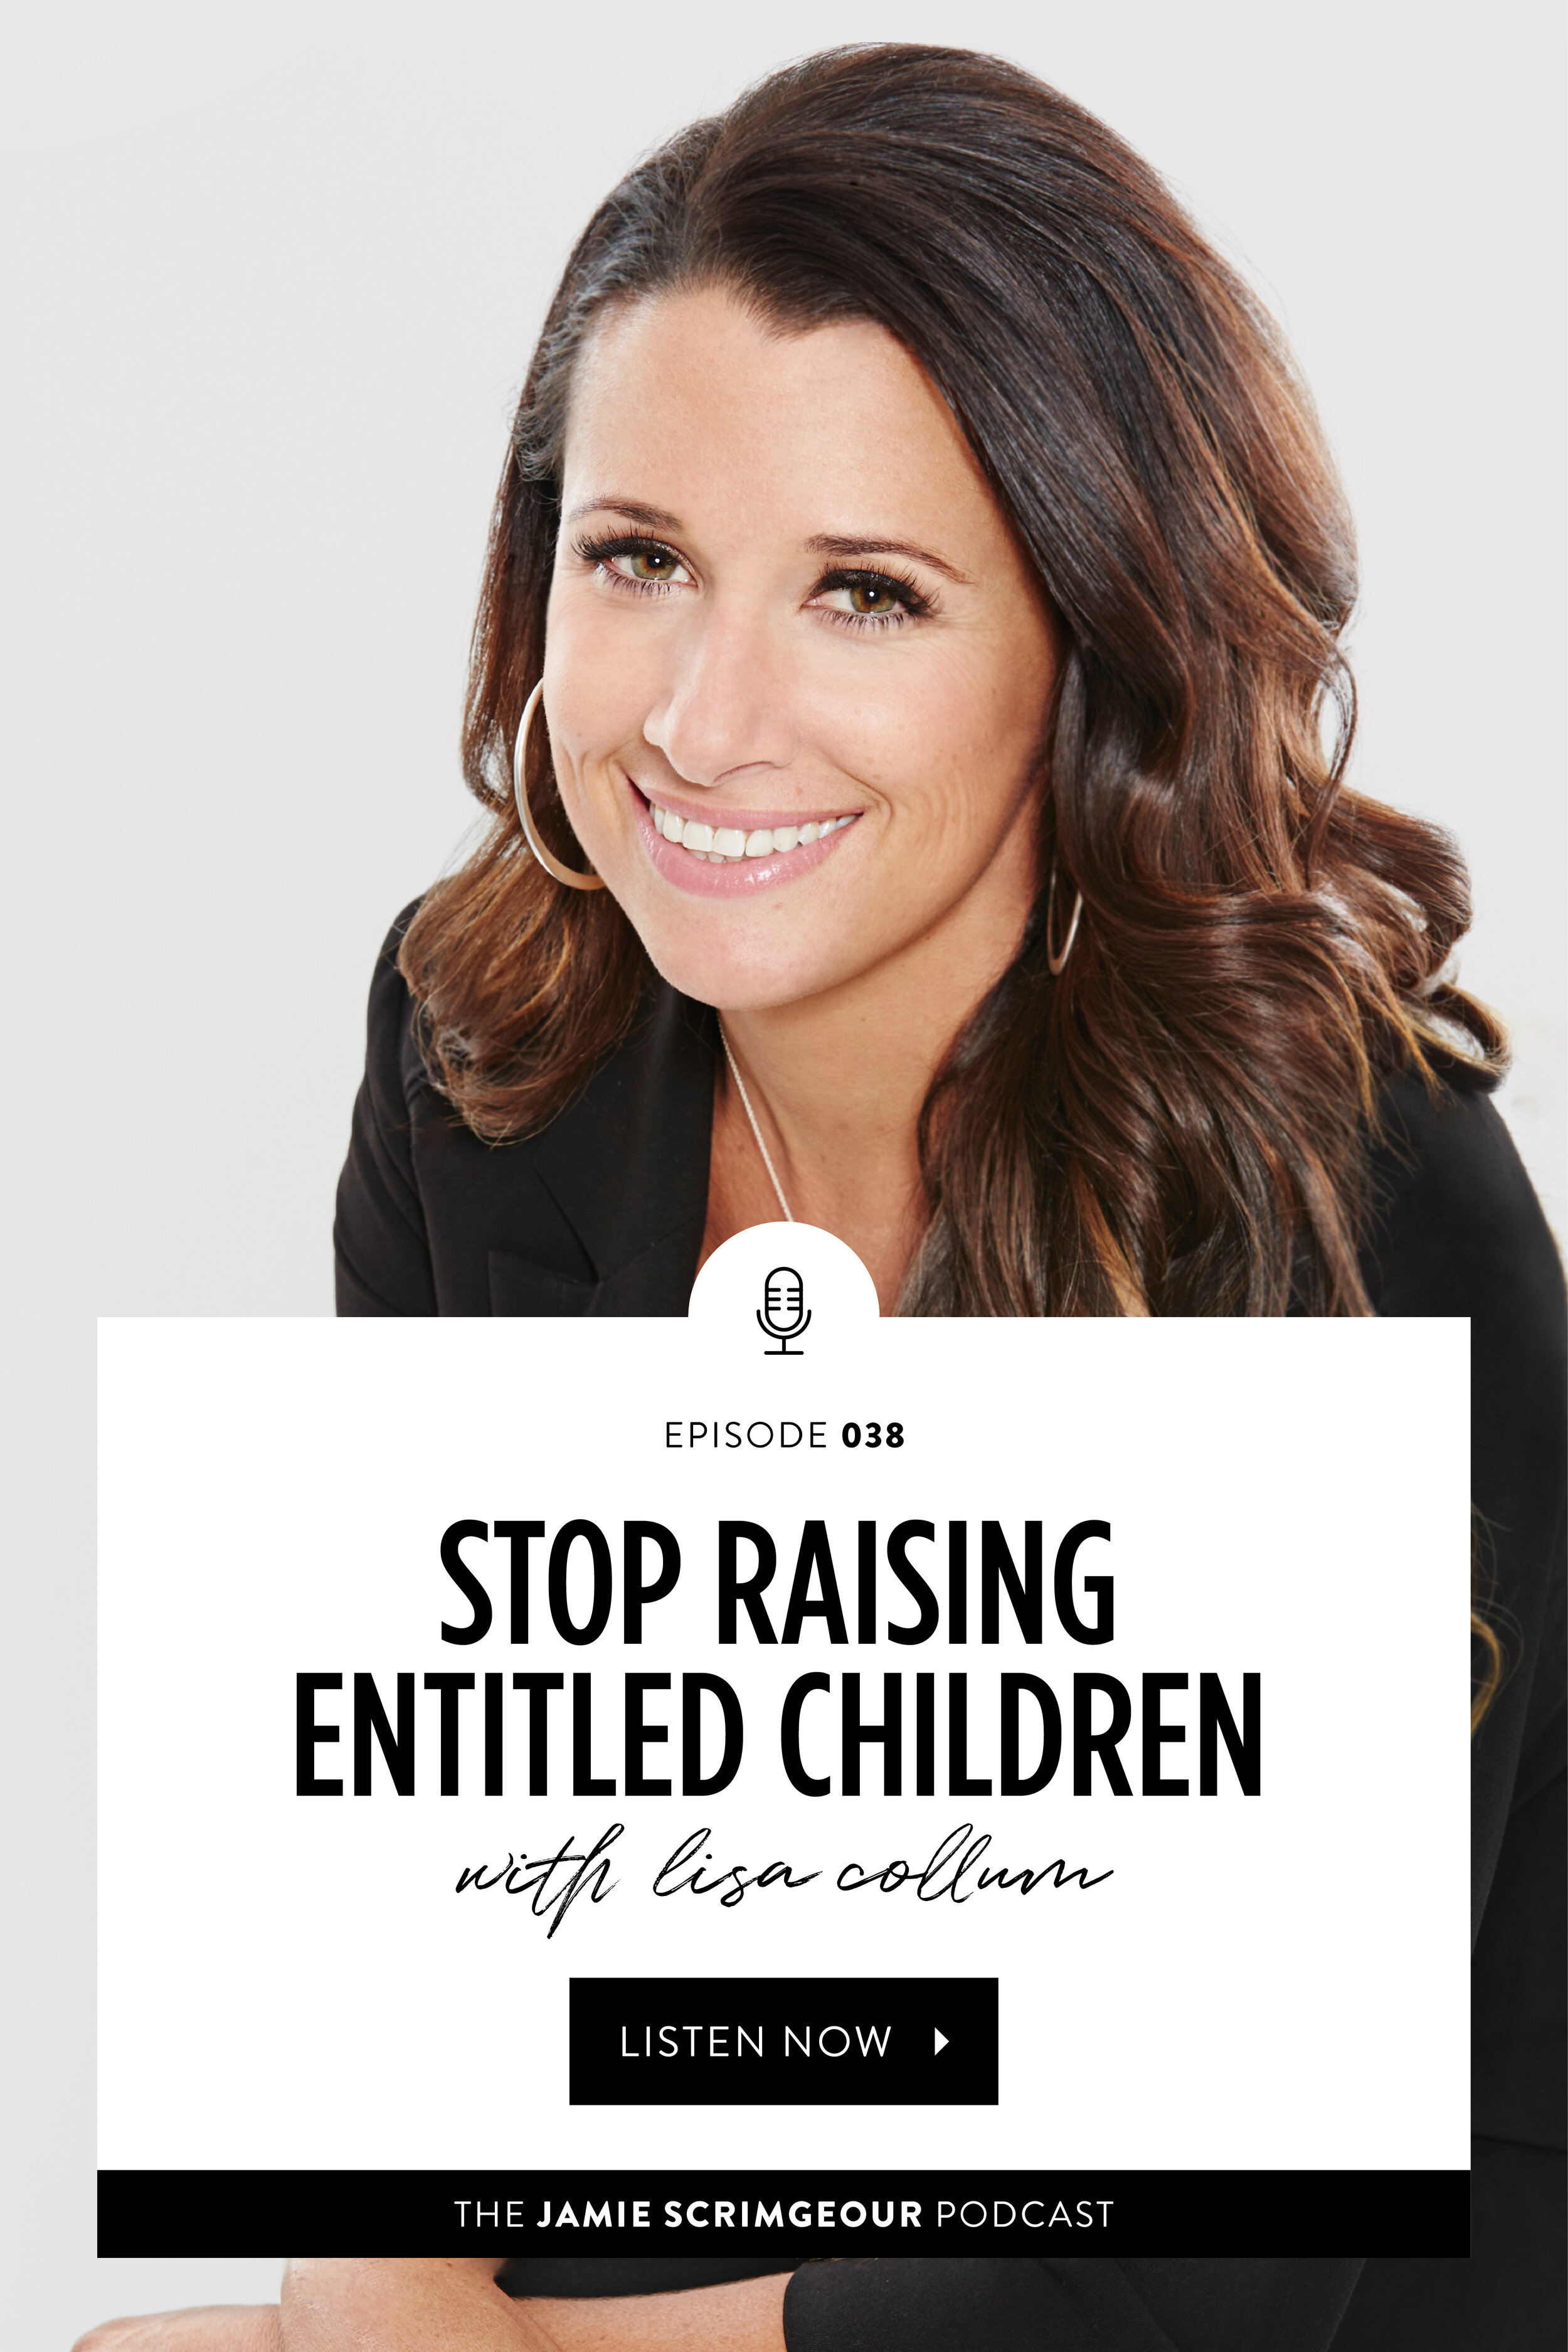 Interview with Lisa Collum, Entrepreneur Tips + Raising Entitled Children - Episode 38 of The Jamie Scrimgeour Podcast